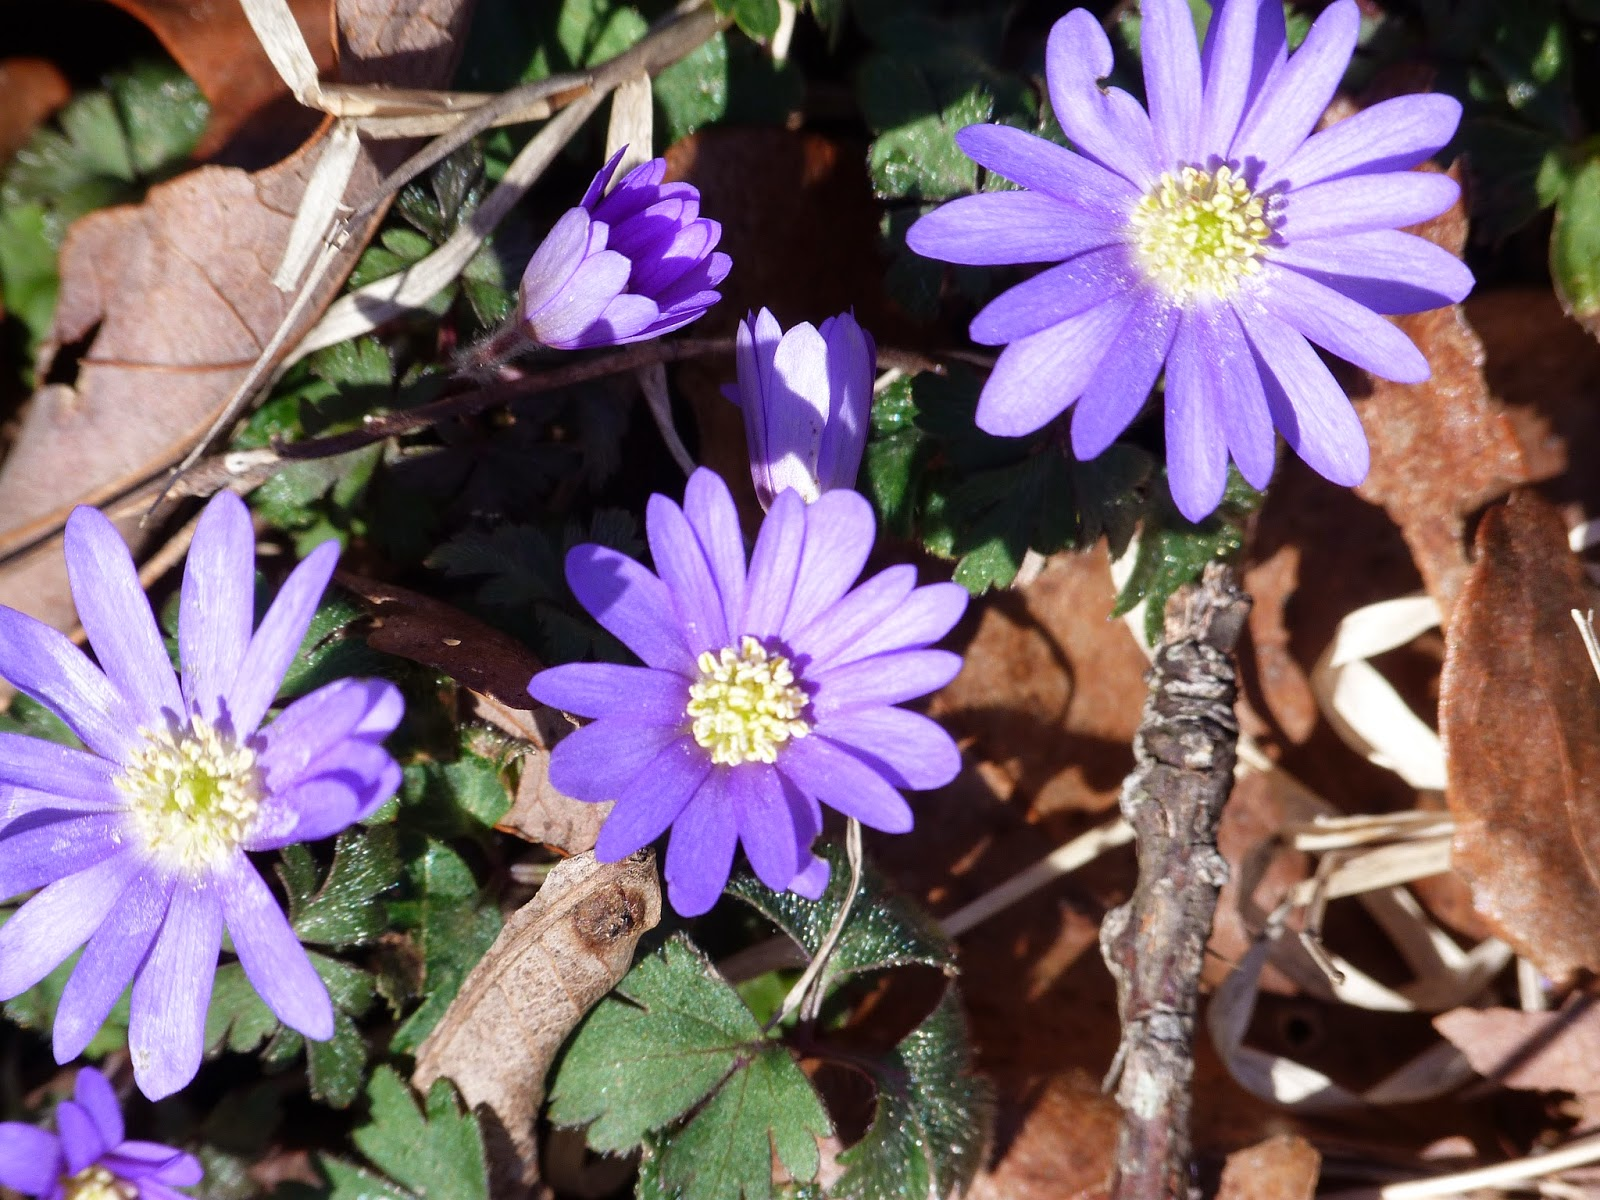 chmusings: Wild asters